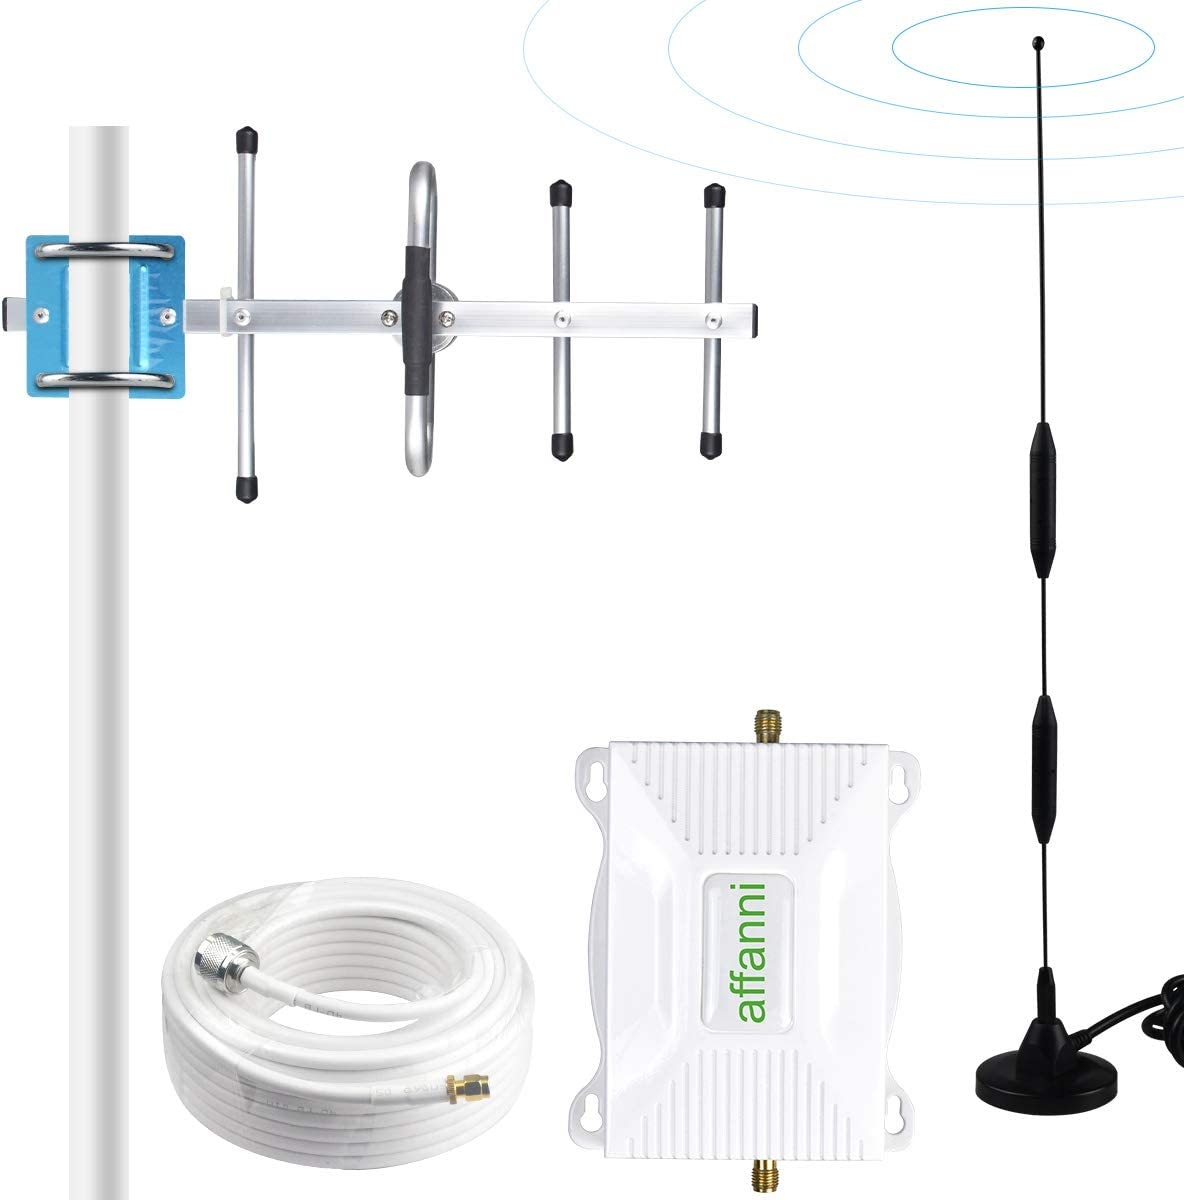 ATT Signal Booster AT&T Cell Phone Signal Booster 4G LTE Cell Phone Booster AT&T Cell Signal Booster T-Mobile Cricket Band 12/17 AT&T Cellular Signal Booster Amplifier Repeater Cell Extender for Home